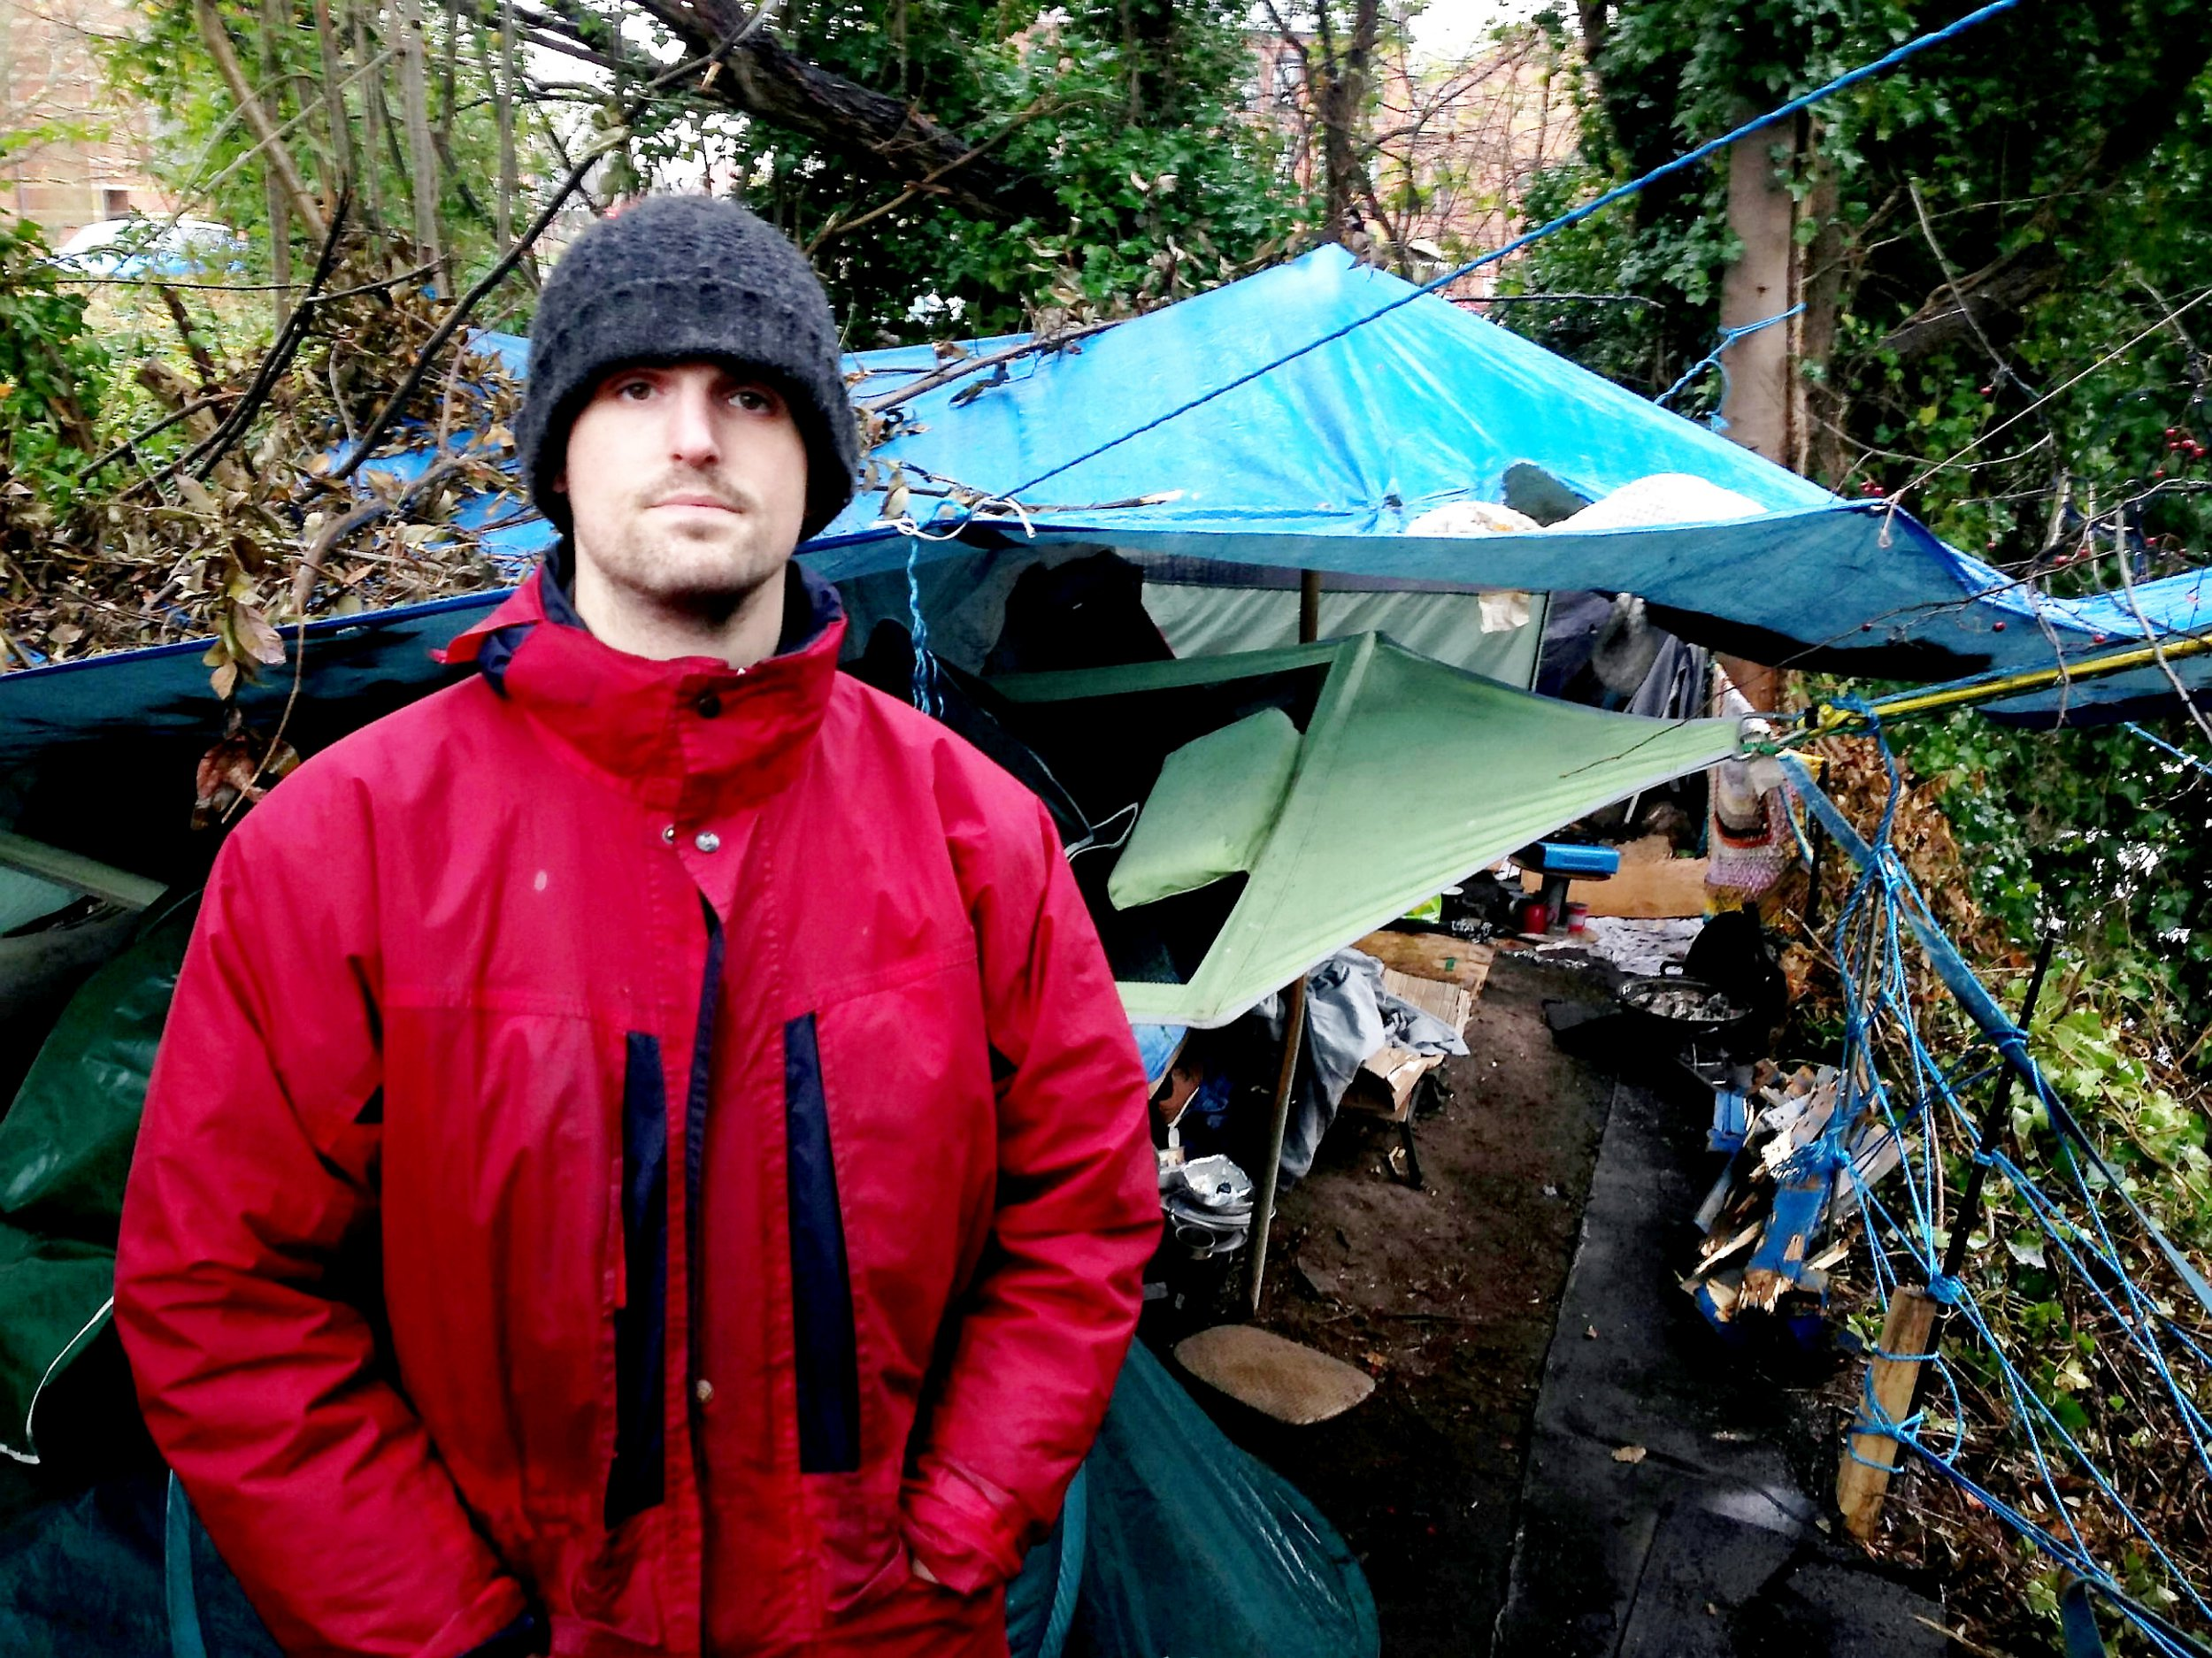 Former soldier, Jake, who has lived at the camp for a couple of months. A war hero who fought in Afghanistan is now homeless and living in a makeshift shack on a river bank after he was diagnosed with PTSD. See SWNS story SWMDsoldier. The squaddie, known only as Jake, left the Army after struggling to cope with seeing pals blown up by bombs in Helmand Province. The 27-year-old, who served for six years, moved into temporary accommodation but became homeless when his relationship broke down in the summer. The former tank driver is now living with a group of other homeless people in a makeshift camp by a river in Worcester. Jake now uses his military training to help the group gather wood, make shelter and keep warm.